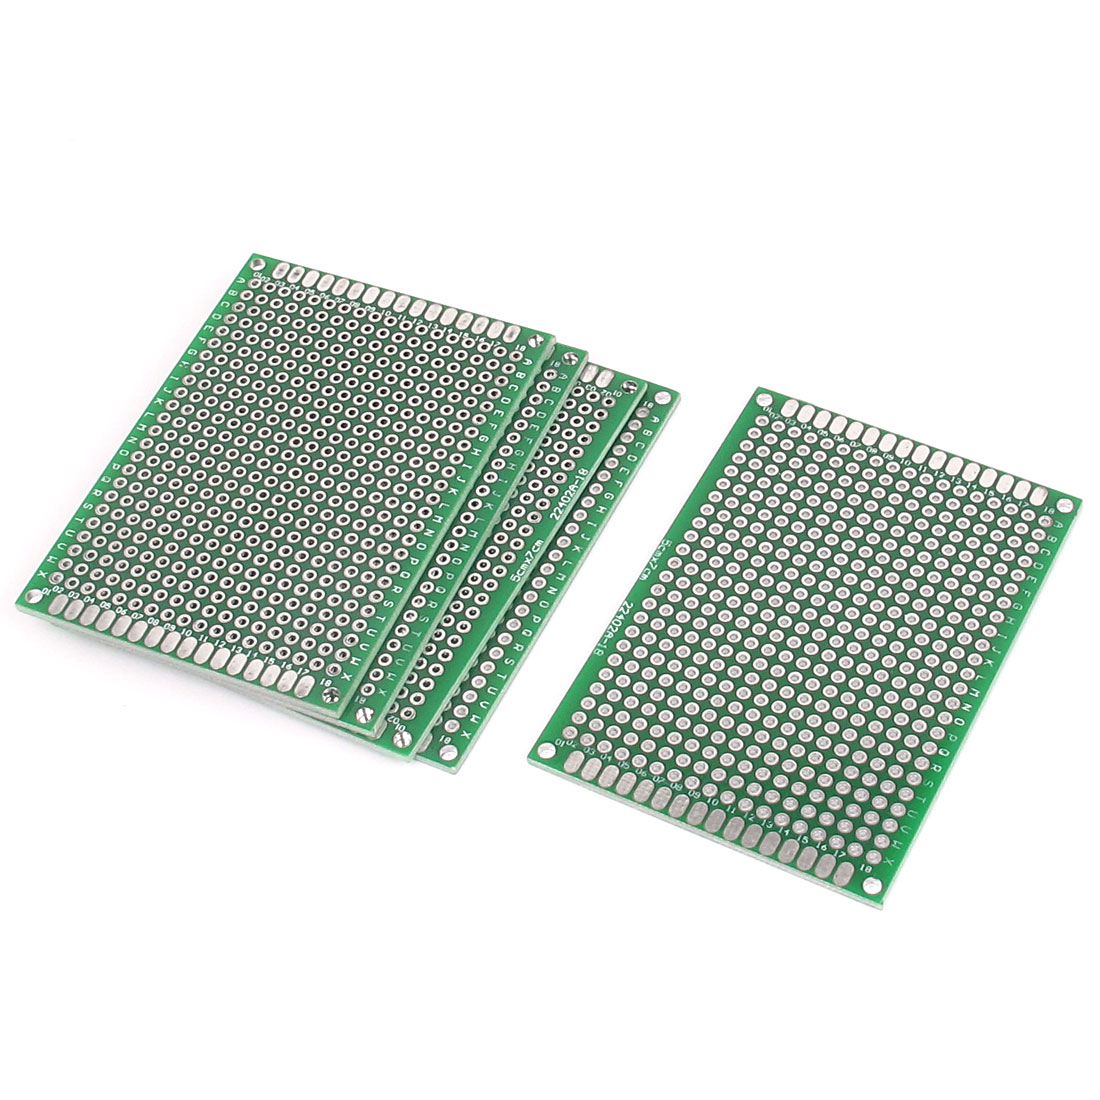 5pcs 5cmx7cm Double Sides Prototyping DIY Soldering Universal PCB Circuit Board Breadboard